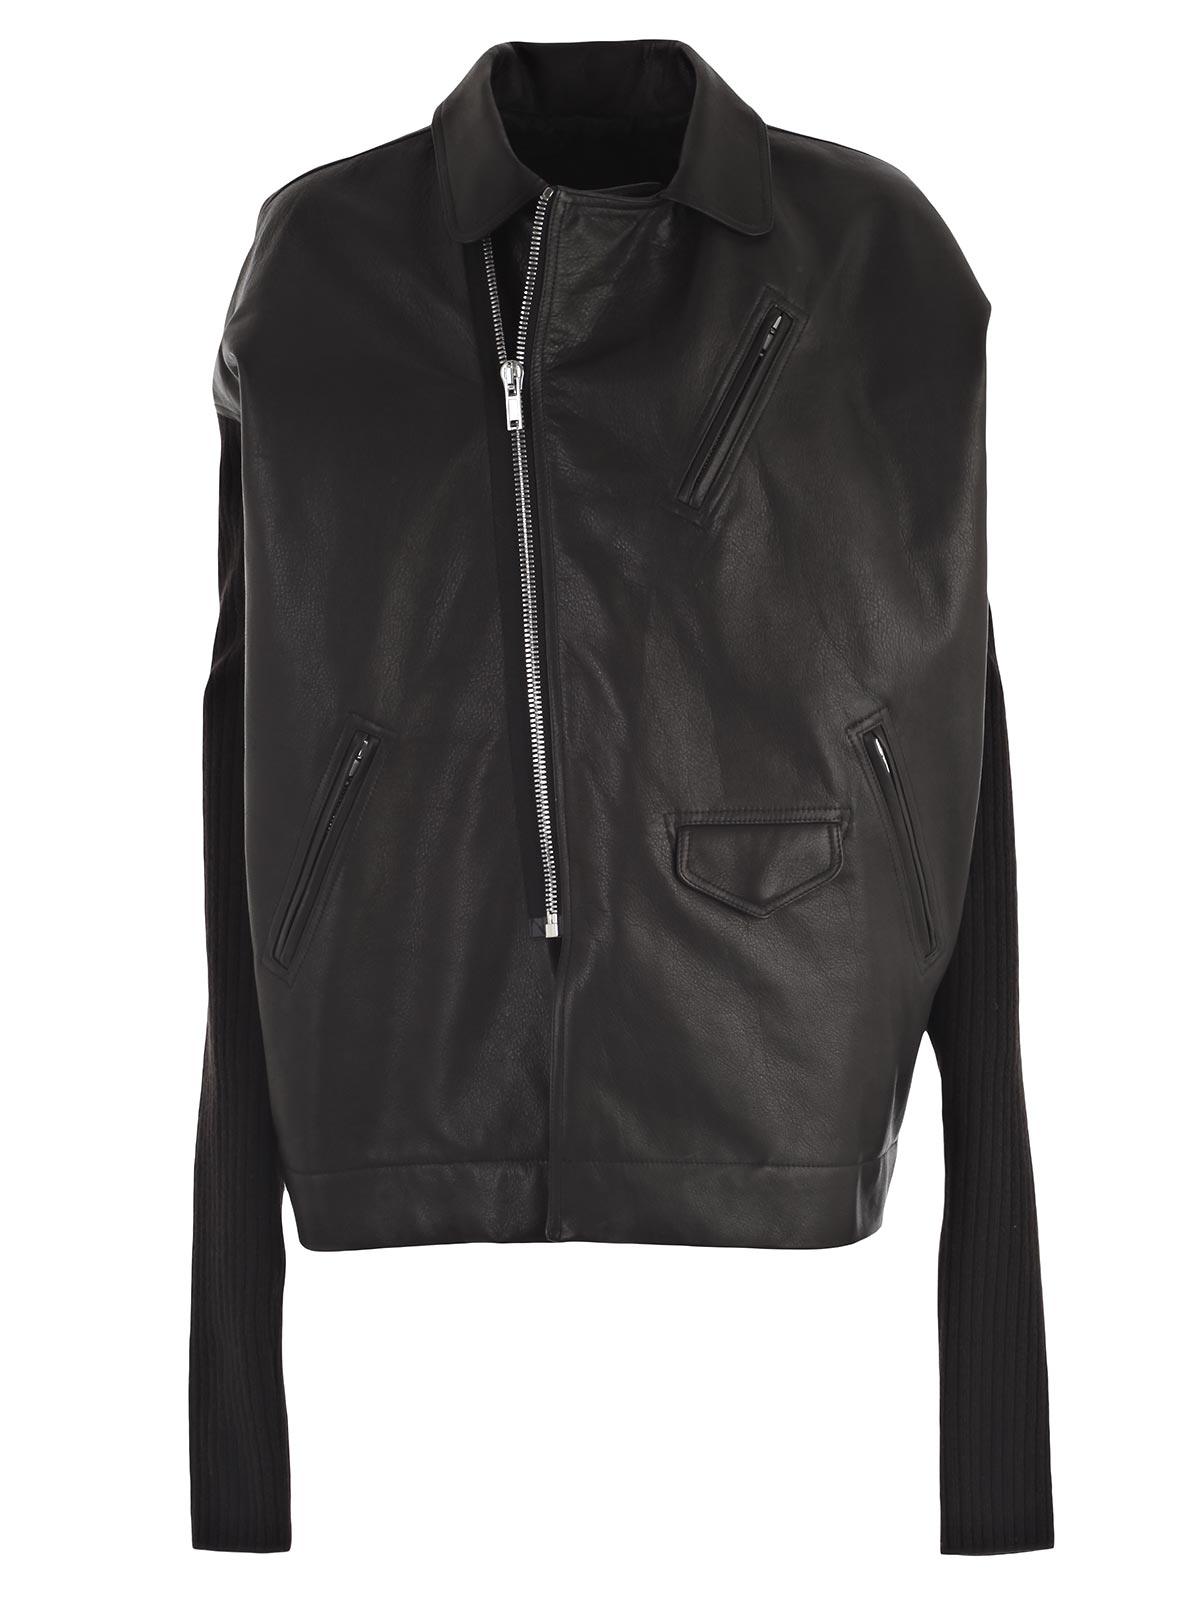 Picture of RICK OWENS JACKET GIACCA (MAXI CHIODO) C/MANICHE A COSTINE